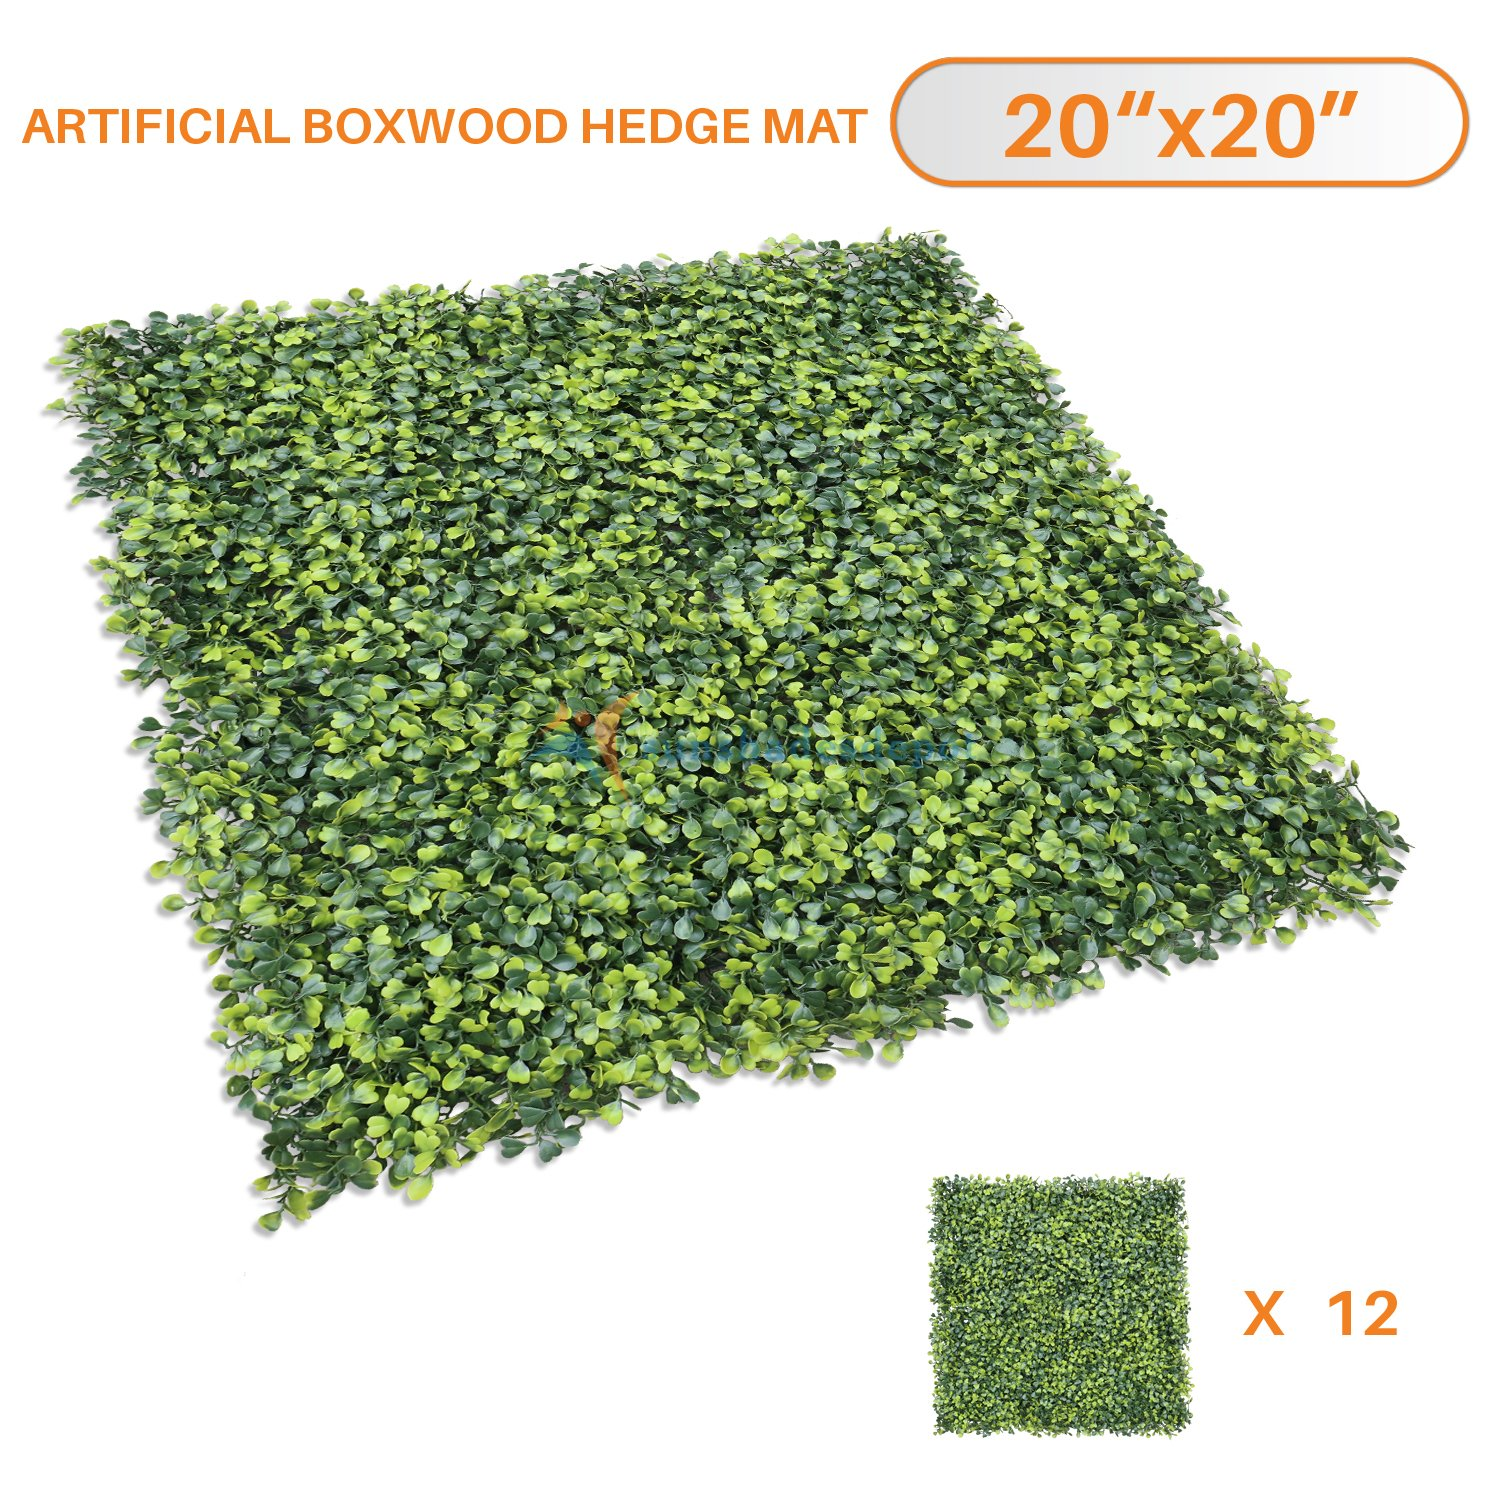 Sunshades Depot SSDBP Artificial Boxwood Milan Leaf Grass Fence Privacy Screen Hedge Panels Fake Plant Wall 20''x20'' inch (12pcs) Boxwood Panel